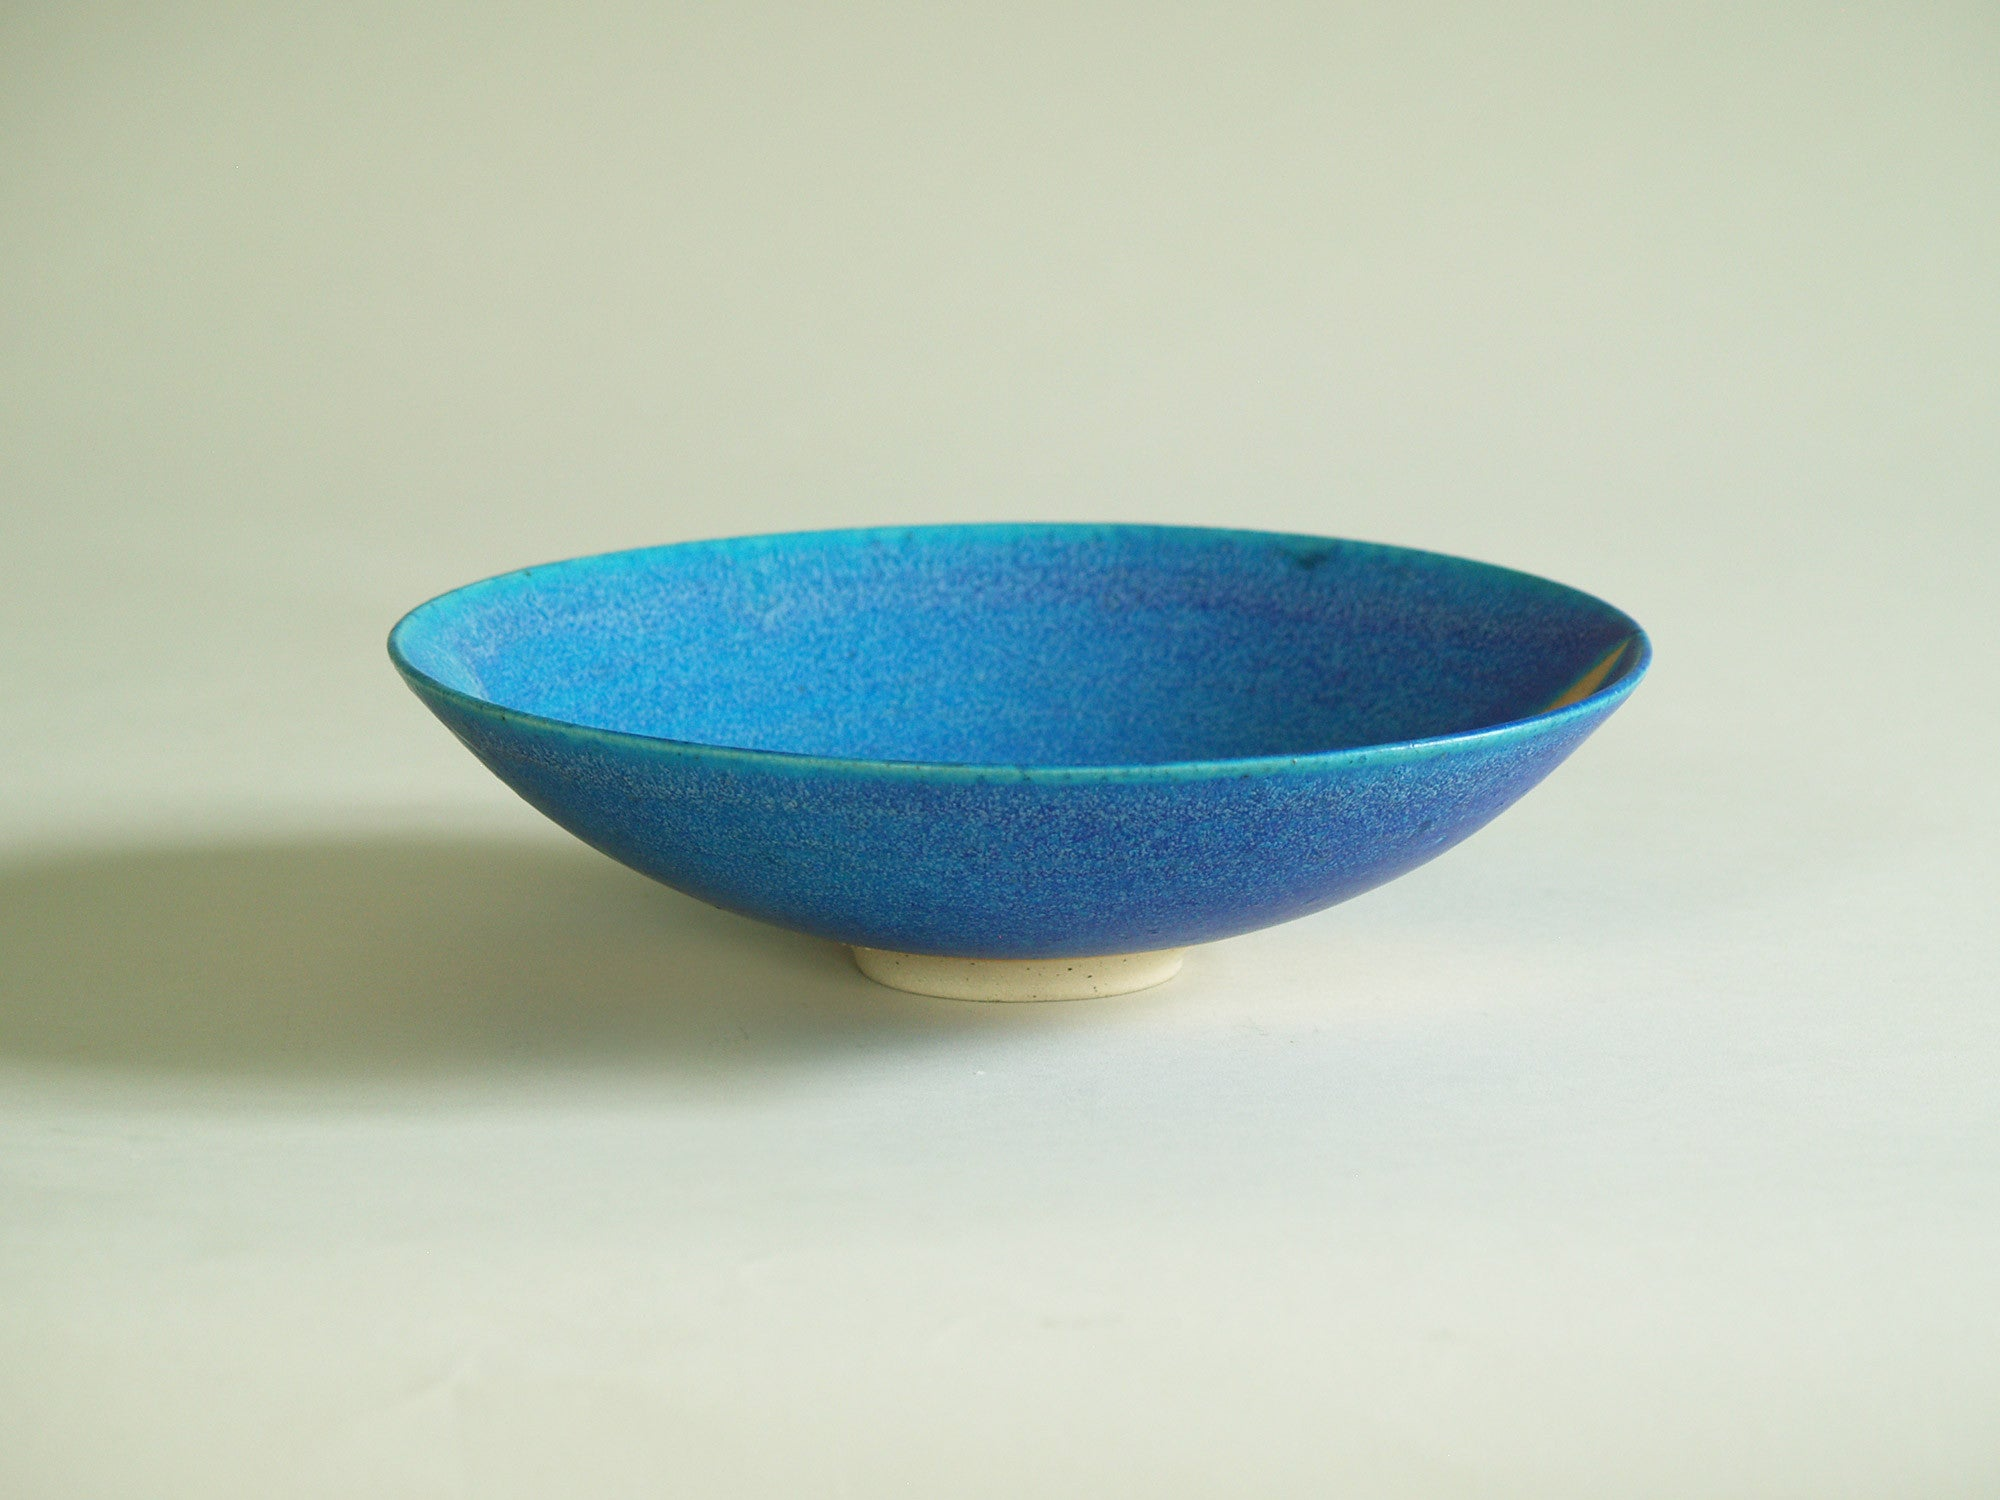 Coupe circulaire d'Inger Krebs, Danemark (vers 1980)..Large Bowl by Inger Krebs, Denmark (ca. 1980)